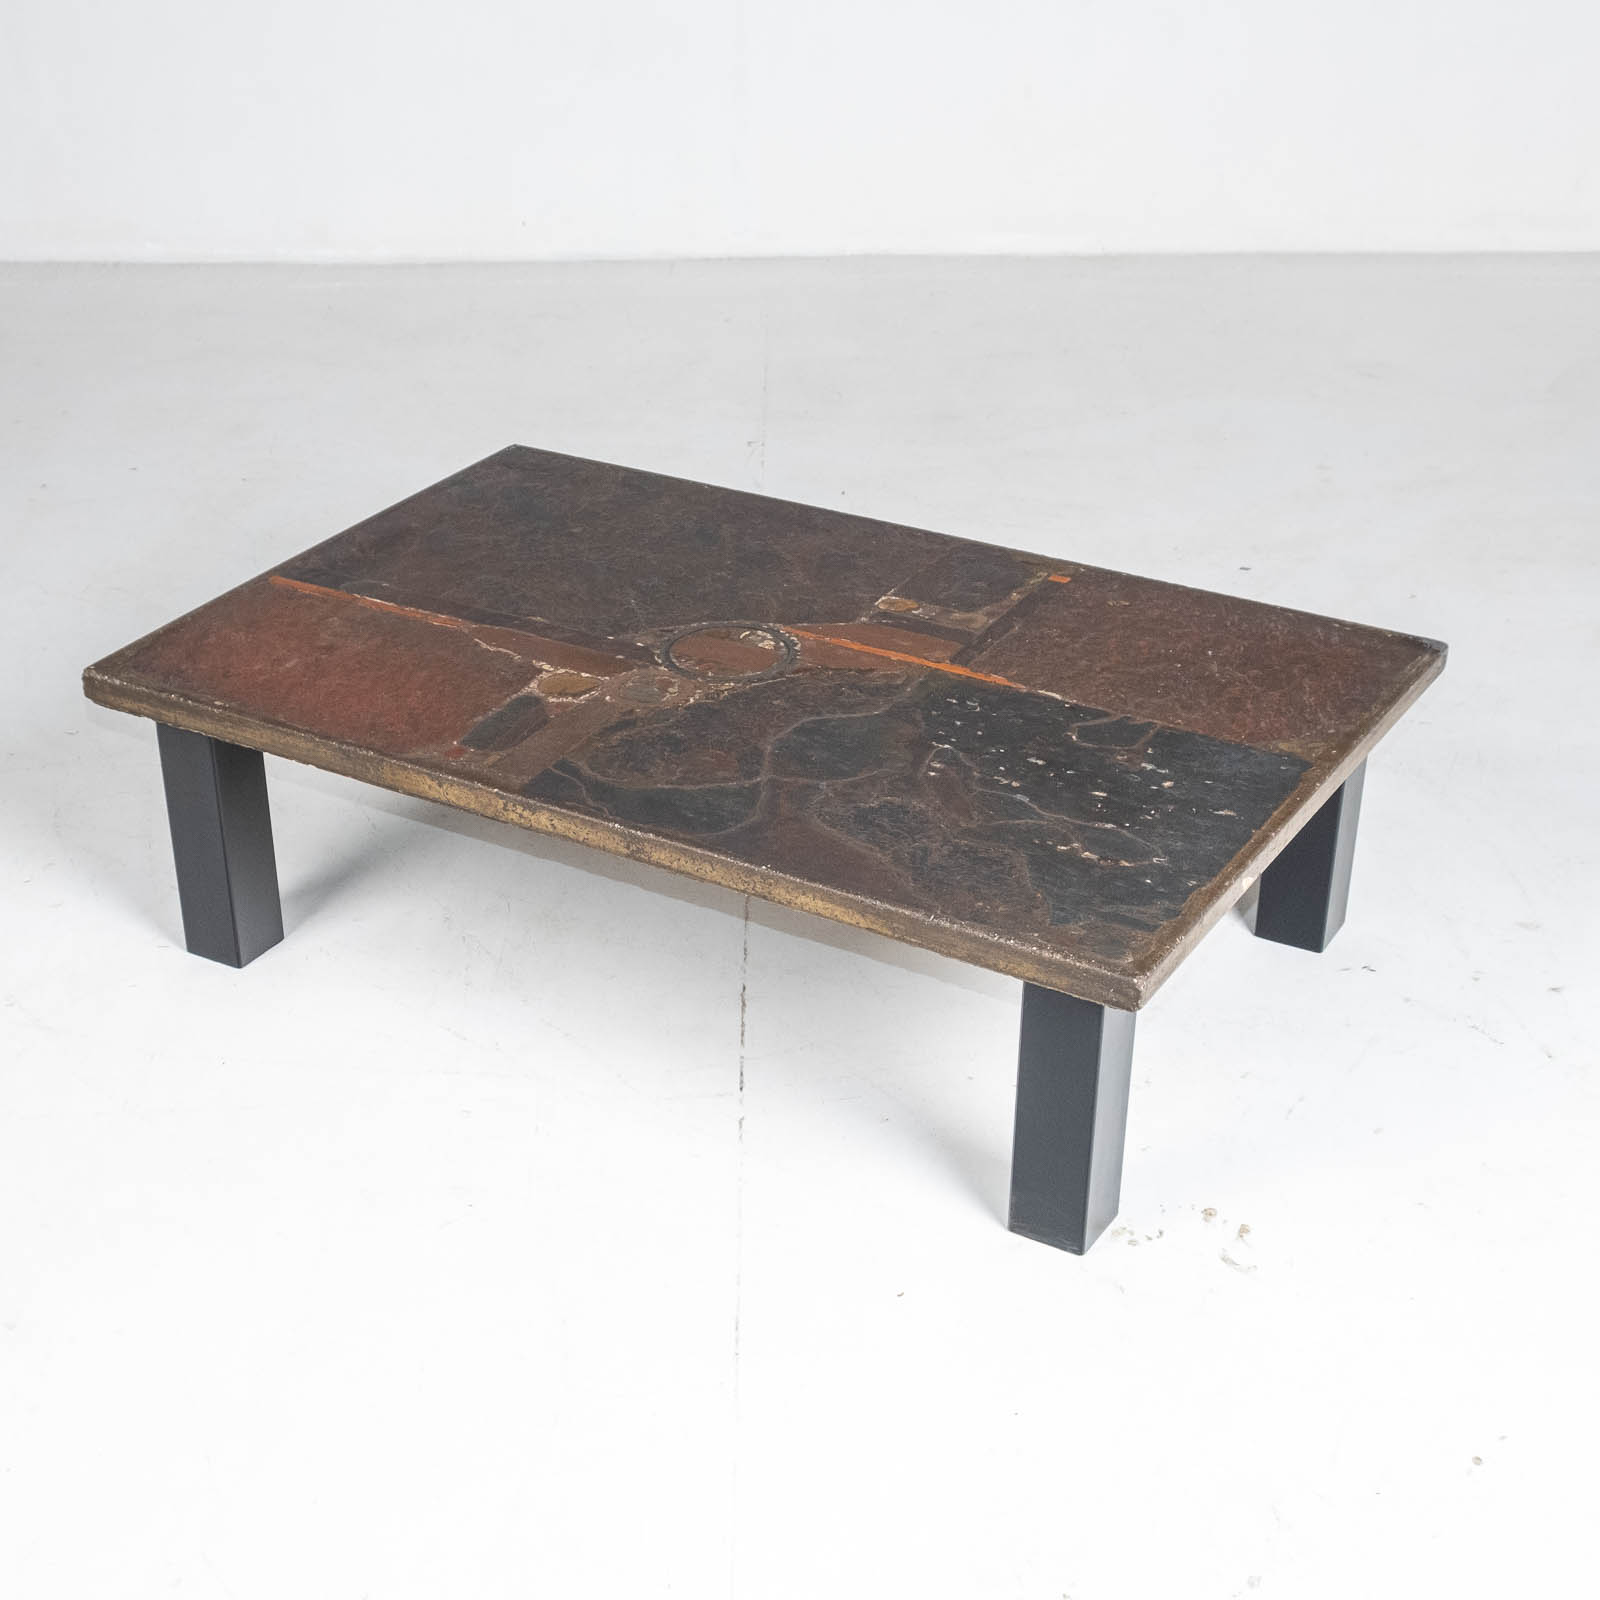 Rectangular Coffee Table By Paul Kingma In Stone And Slate, 1970s, The Netherlands 00005